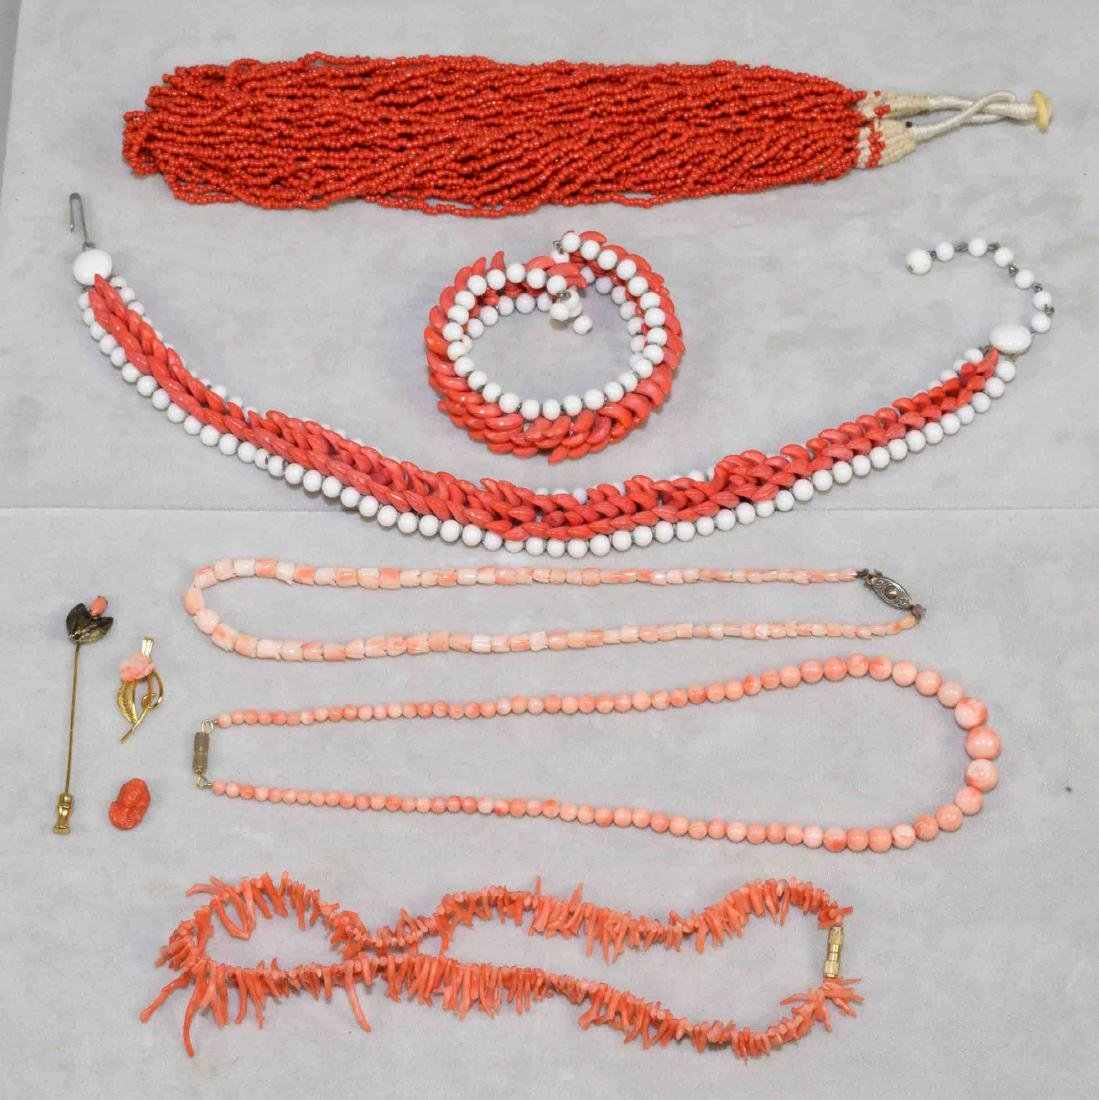 (9) PCS. OF ASST. CORAL JEWELRY. Includes: beaded